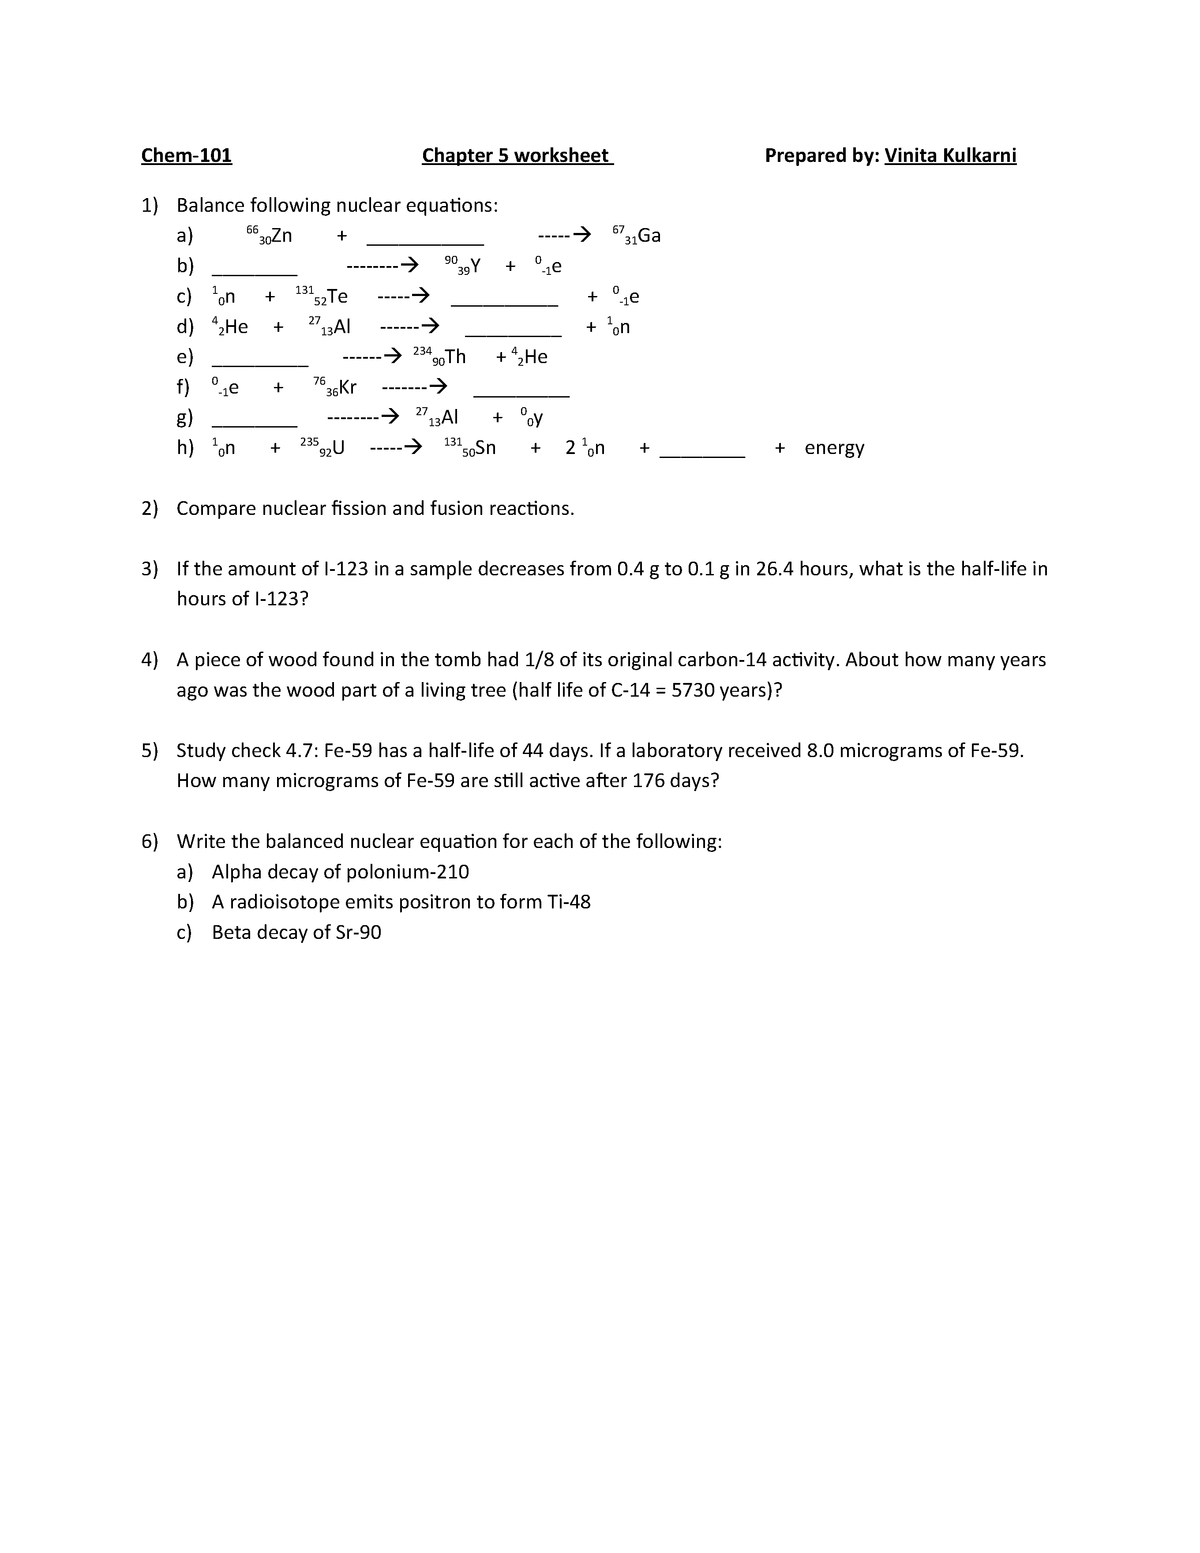 Chapter-5 Worksheet - Chem 101 Introductory Chemistry - Avc